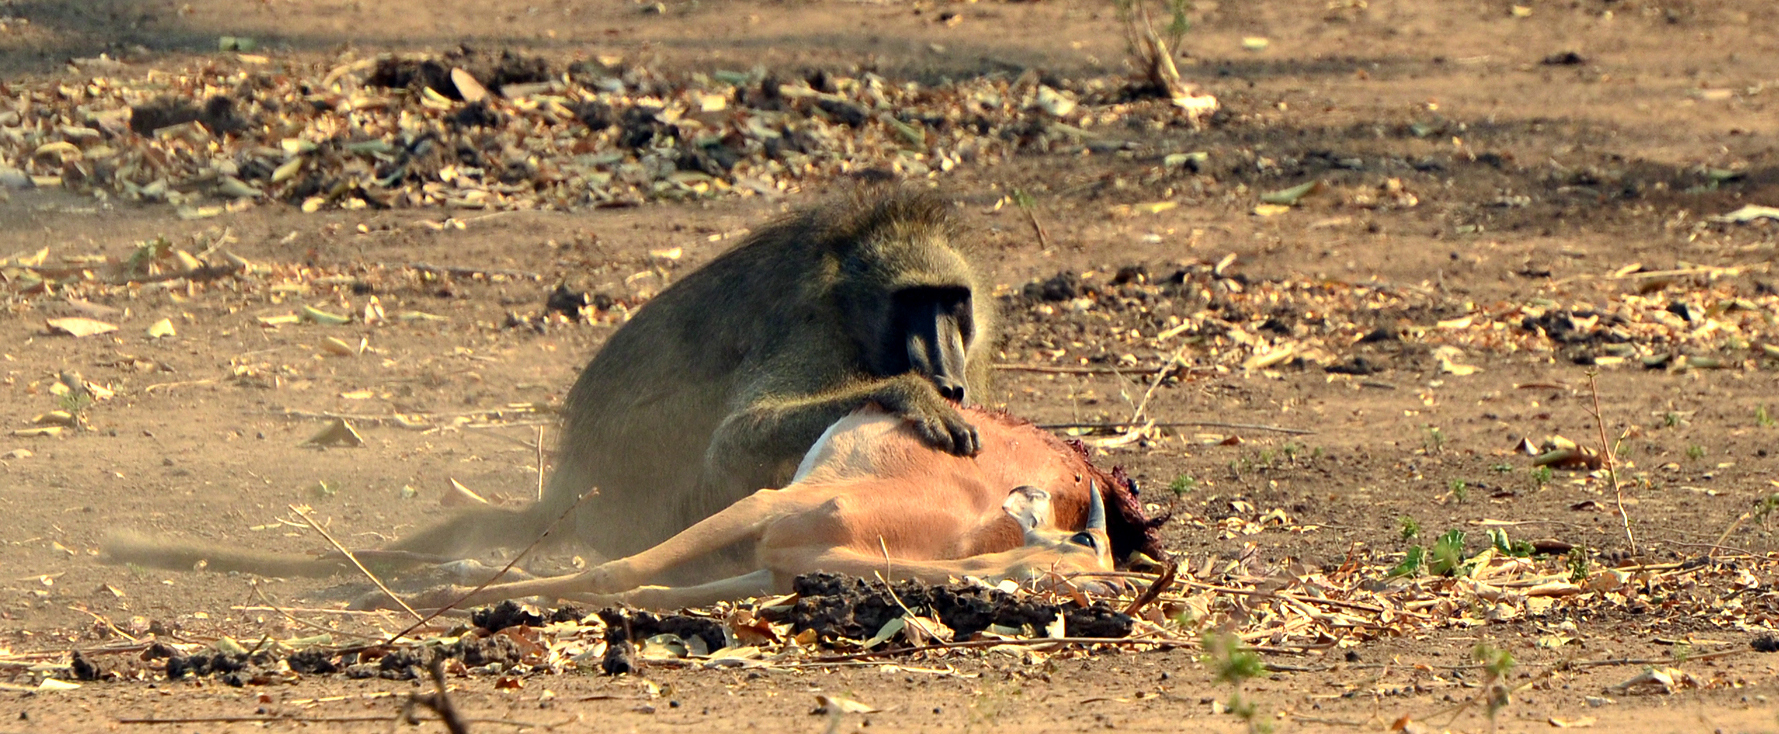 Baboon eats impala at Mana poolsin Zimbabwe